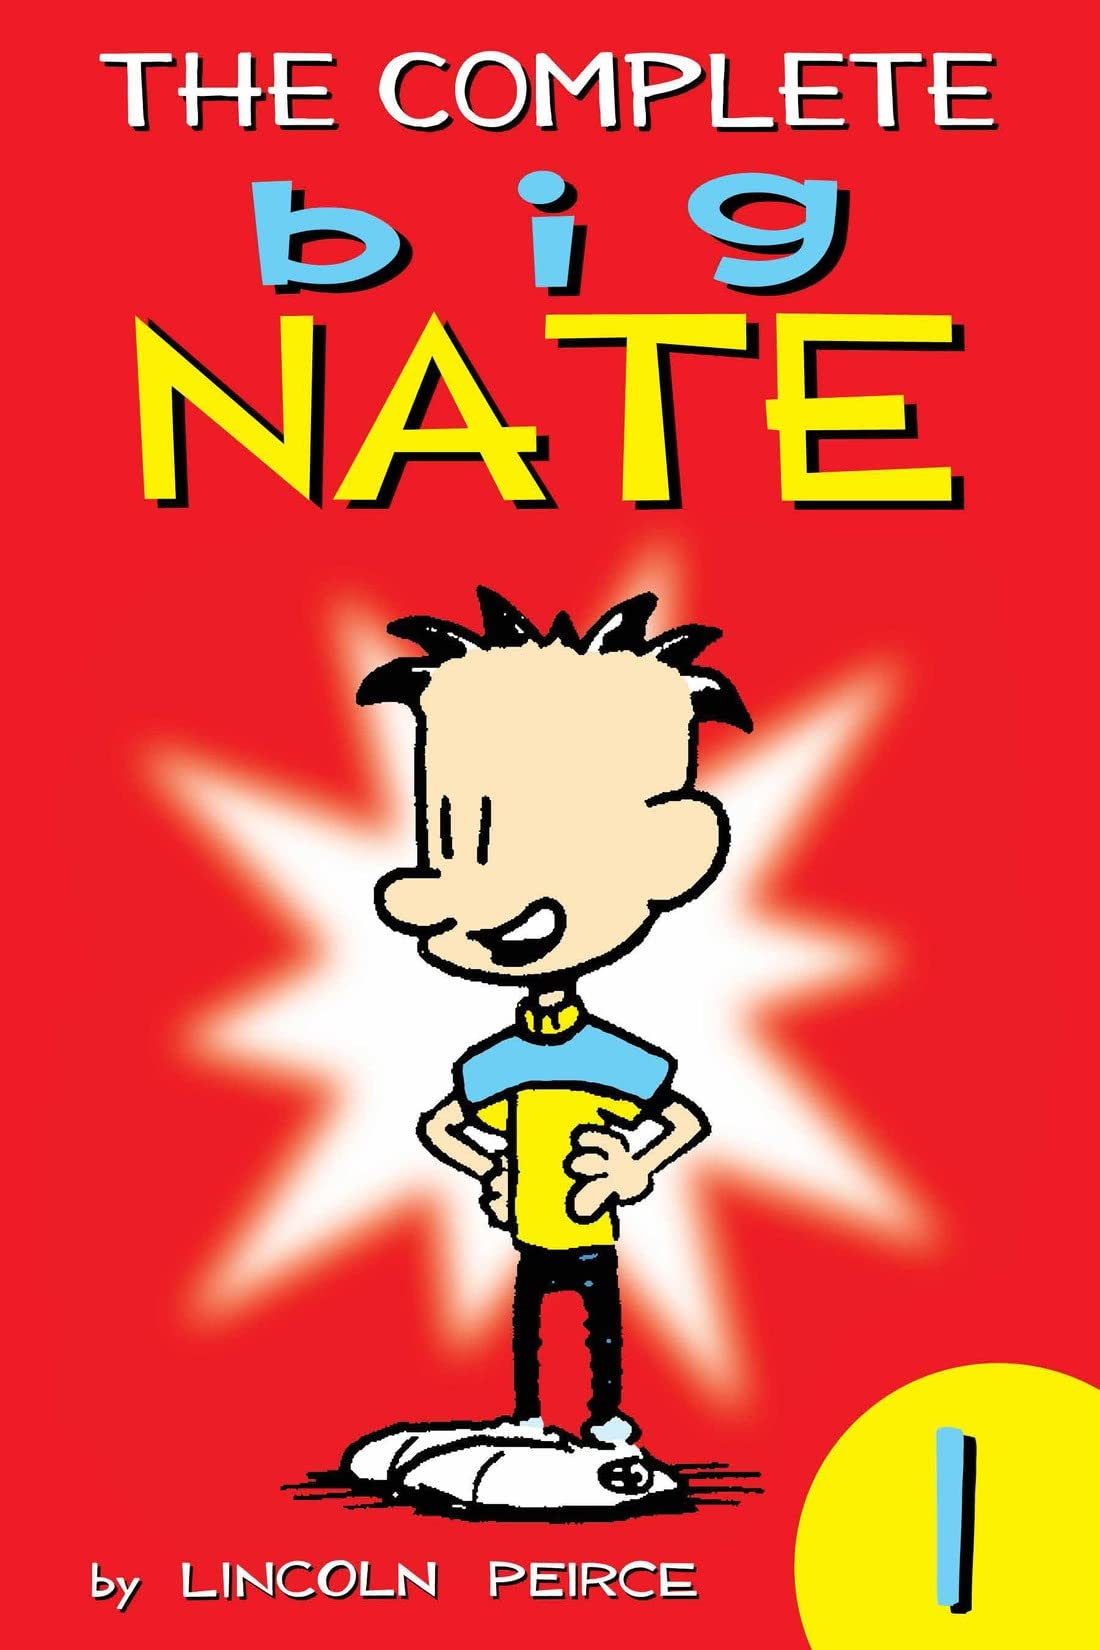 The Complete Big Nate Vol. 1